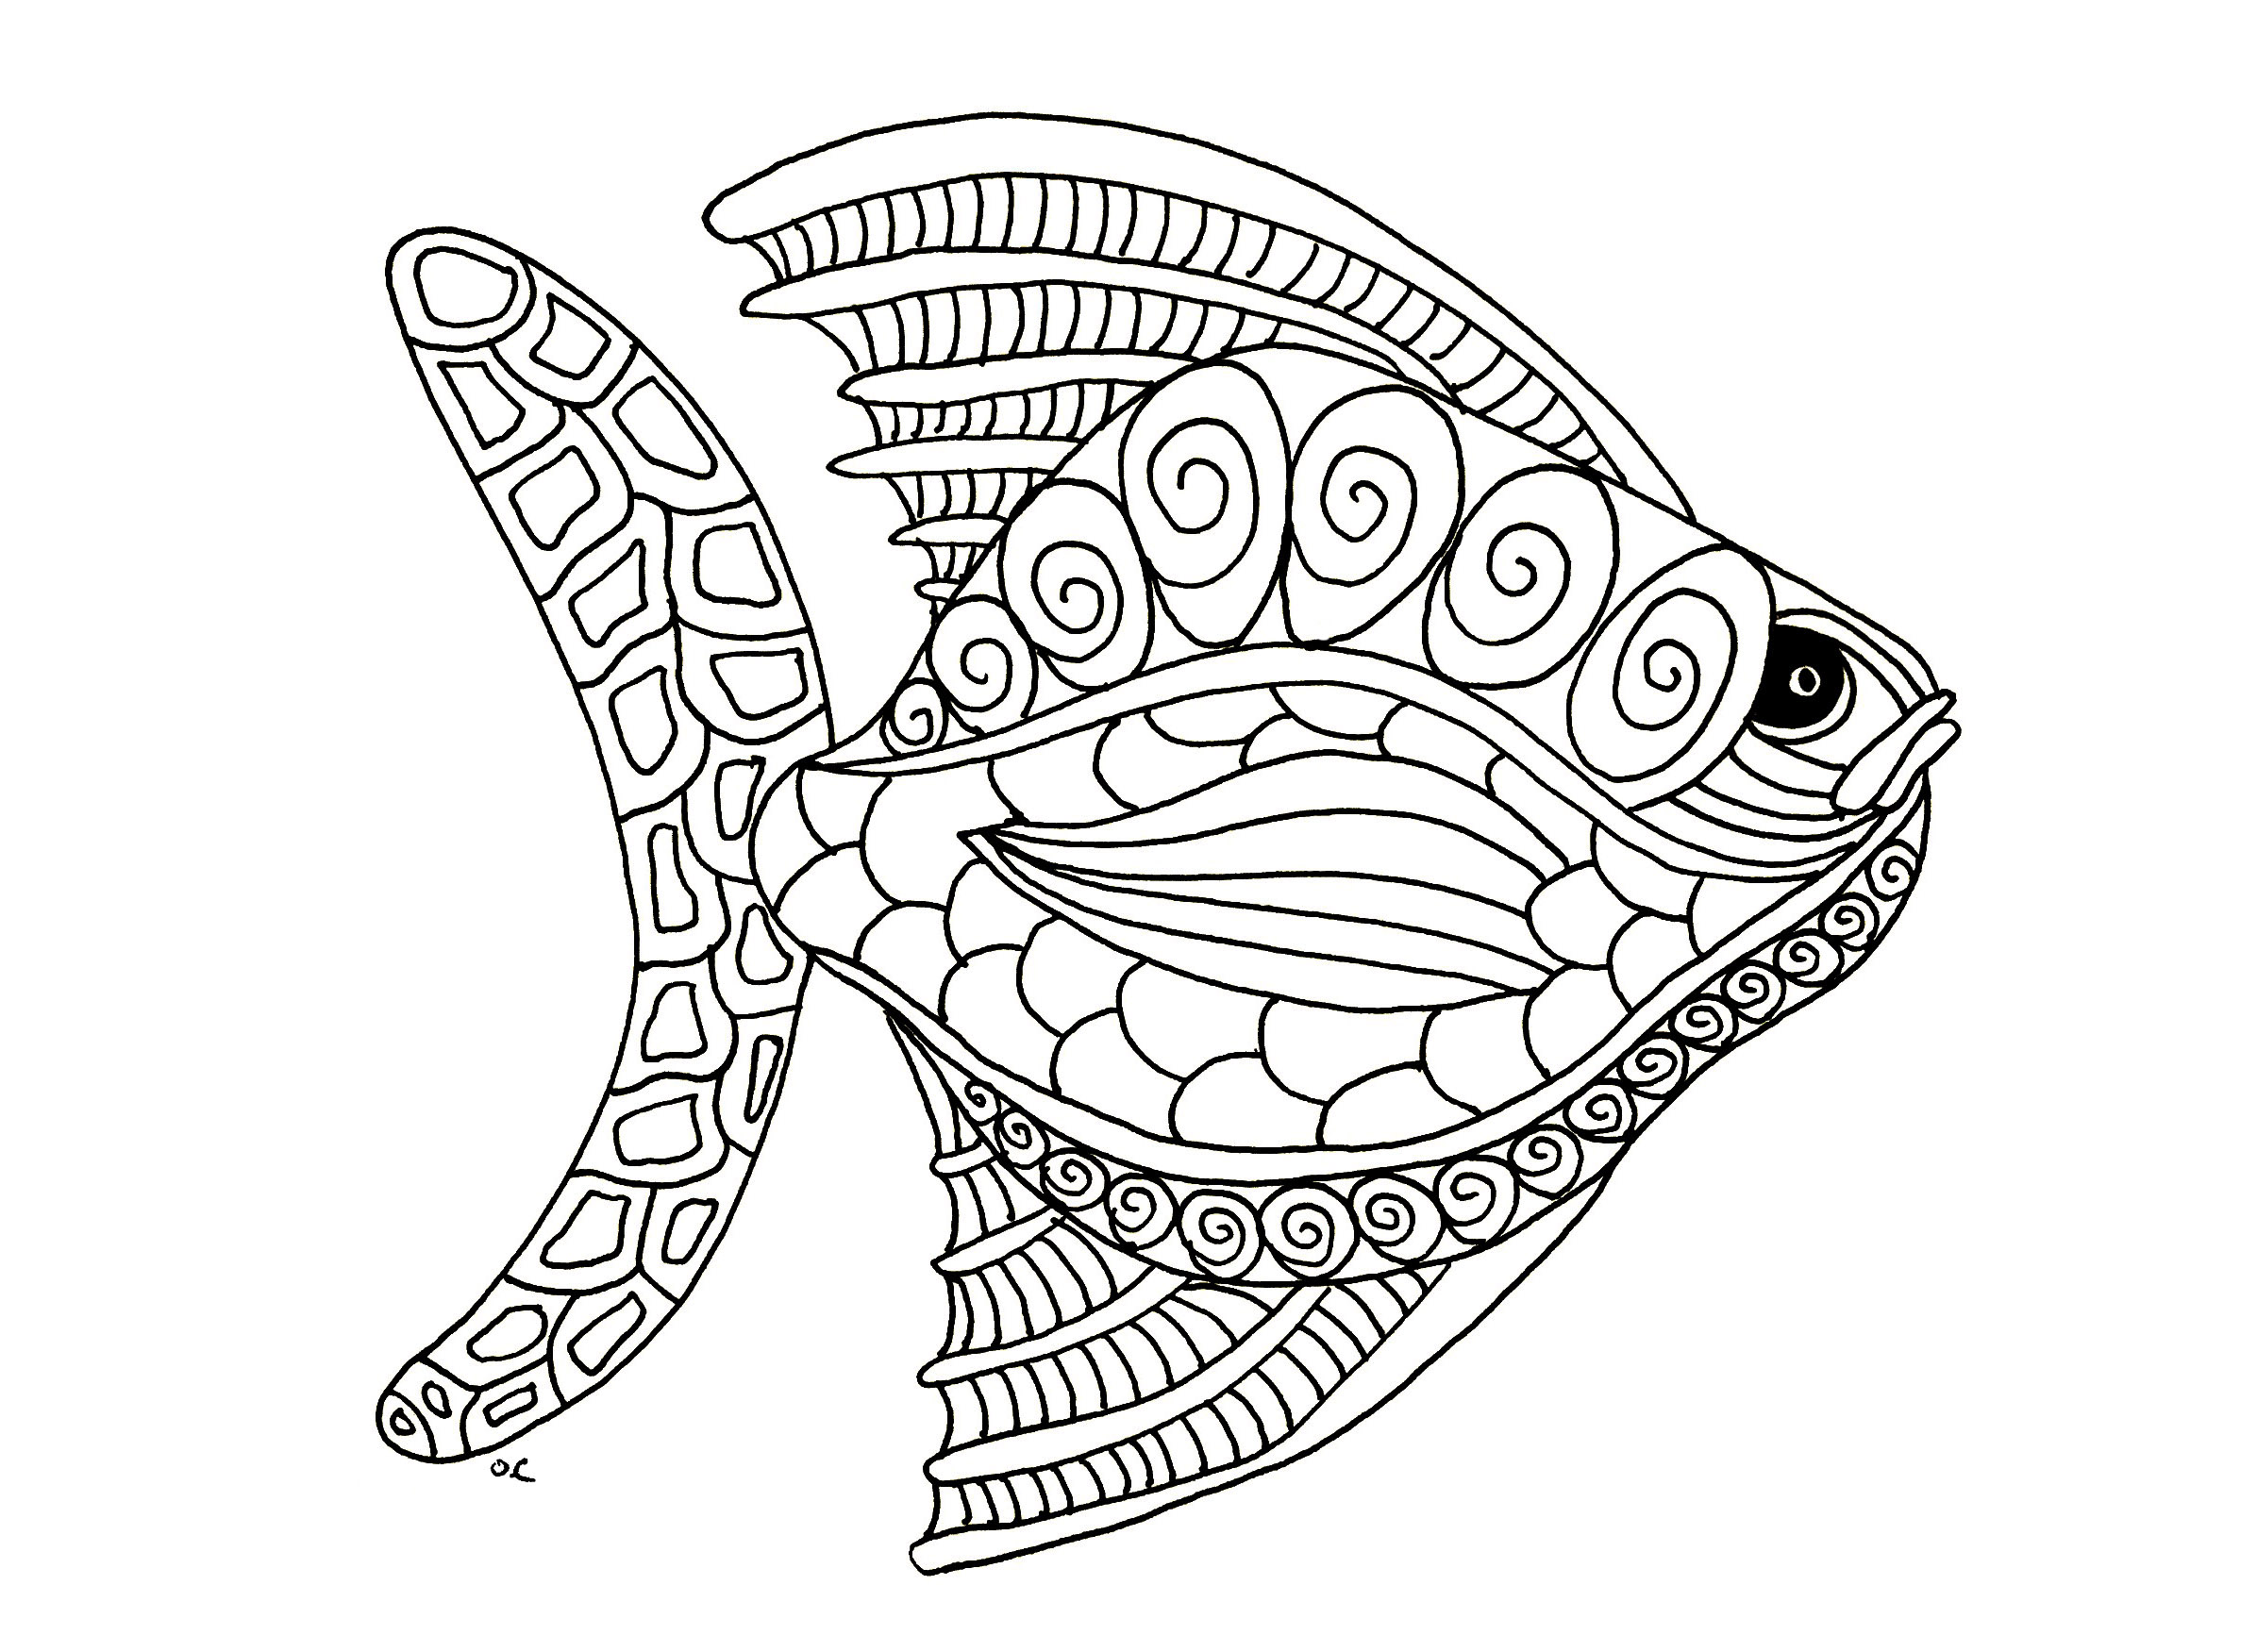 Fish zentangle step 1 by olivier